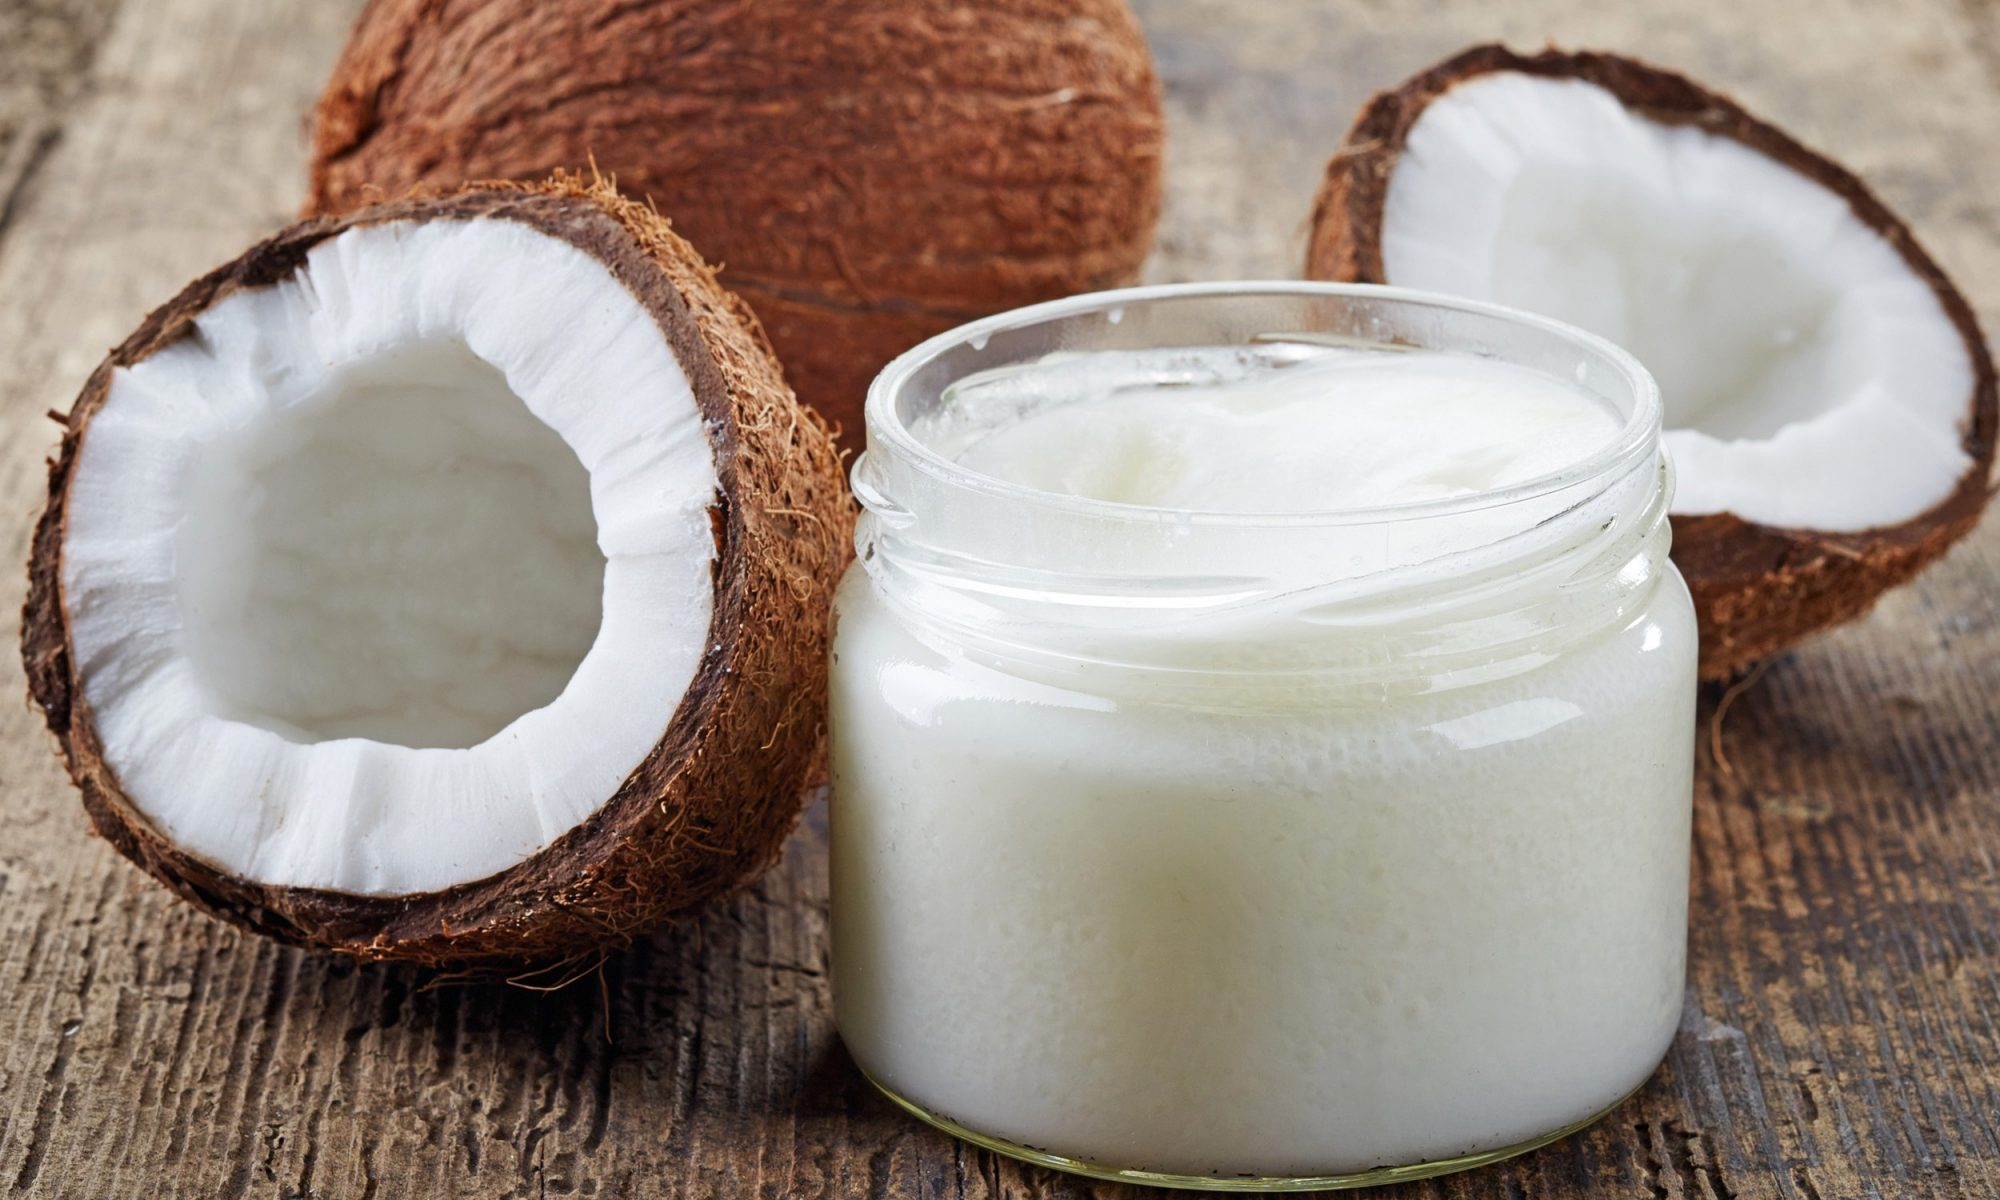 EC: Coconut Oil Is Just As Bad for You As Butter, Says American Heart Association